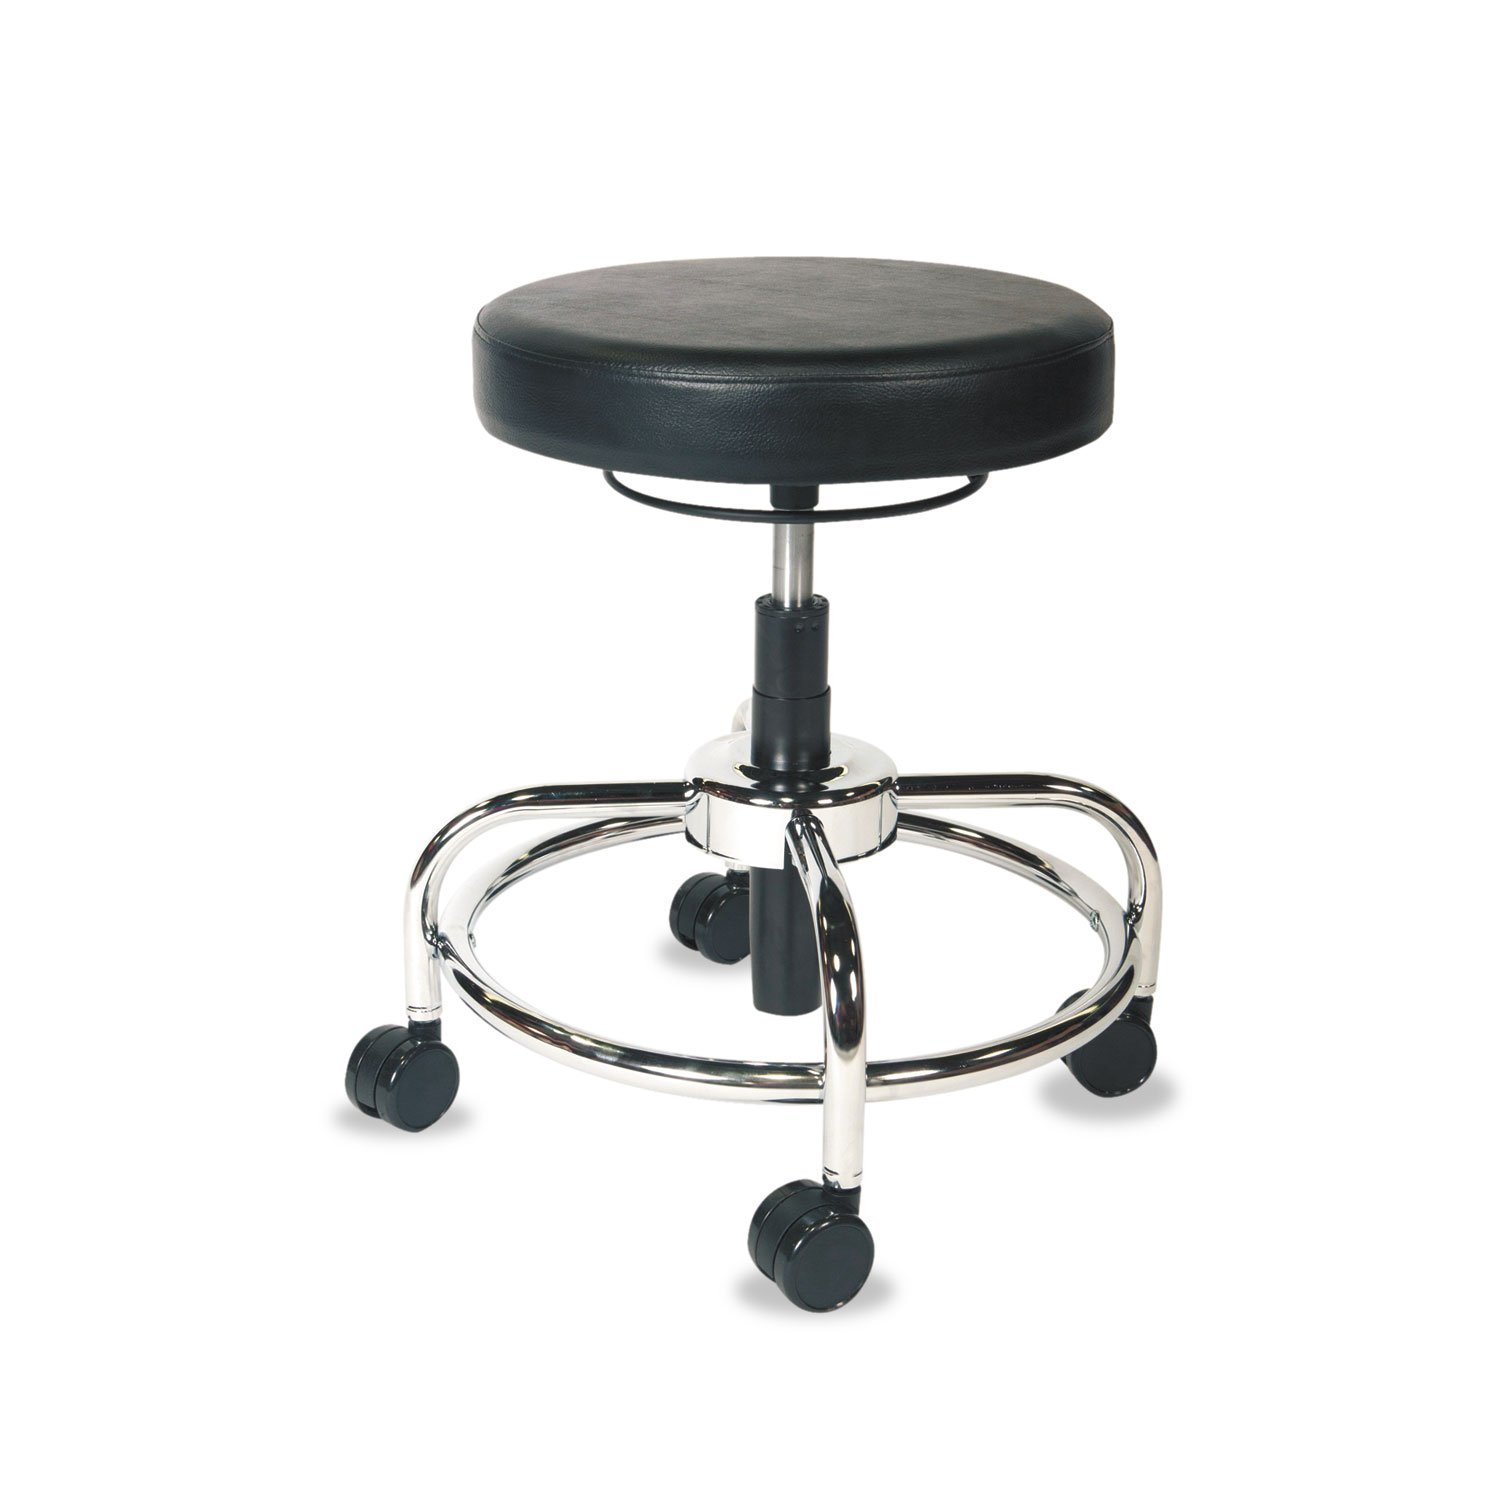 sc 1 st  Amazon.com & Amazon.com: Height Adjustable Utility Stool in Black: Home Improvement islam-shia.org